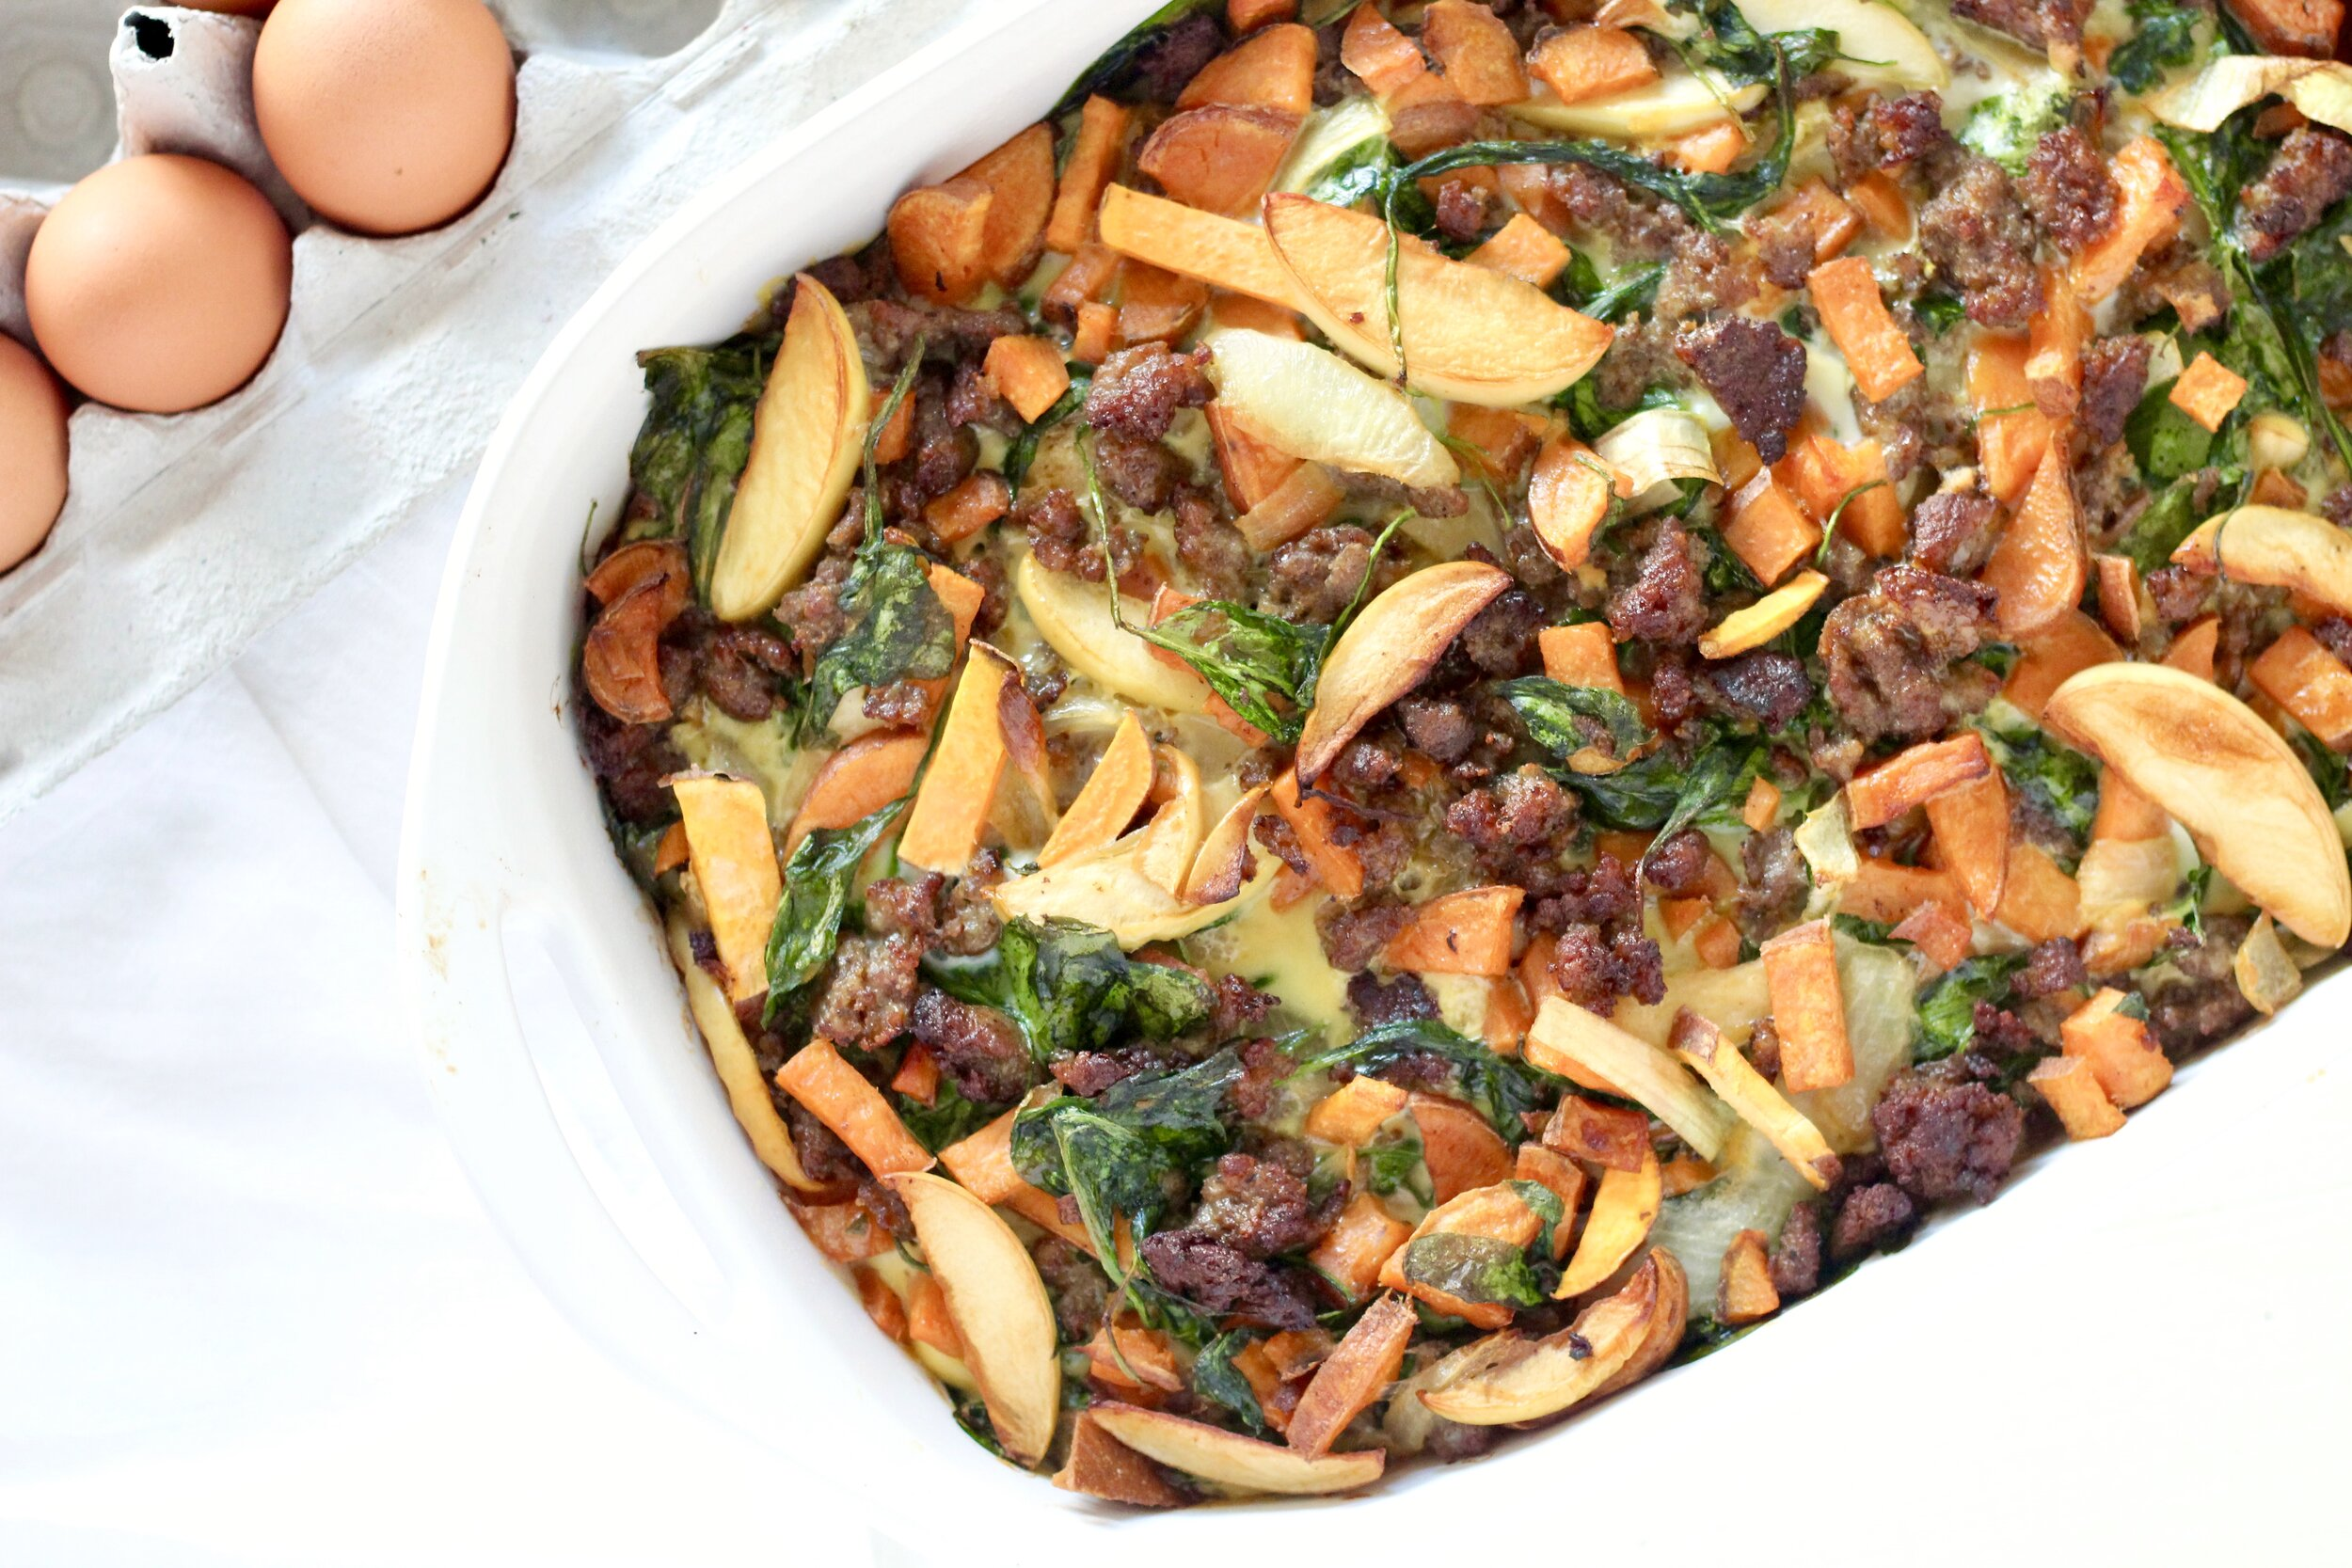 Caramelized Onion, Apple, and Sweet Potato Overnight Breakfast Bake